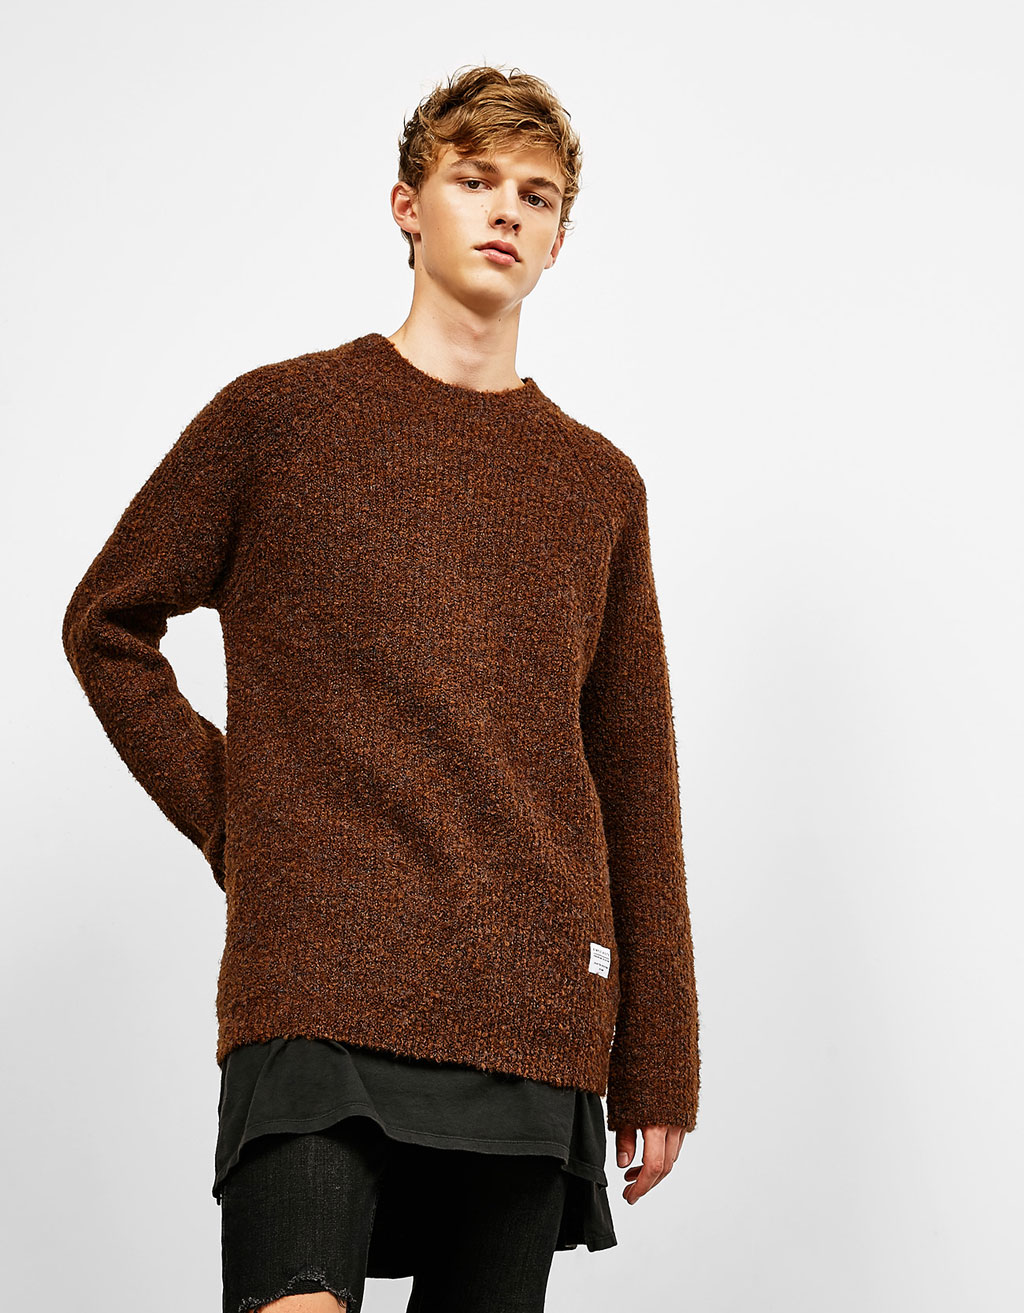 Raglan sleeve knit sweater